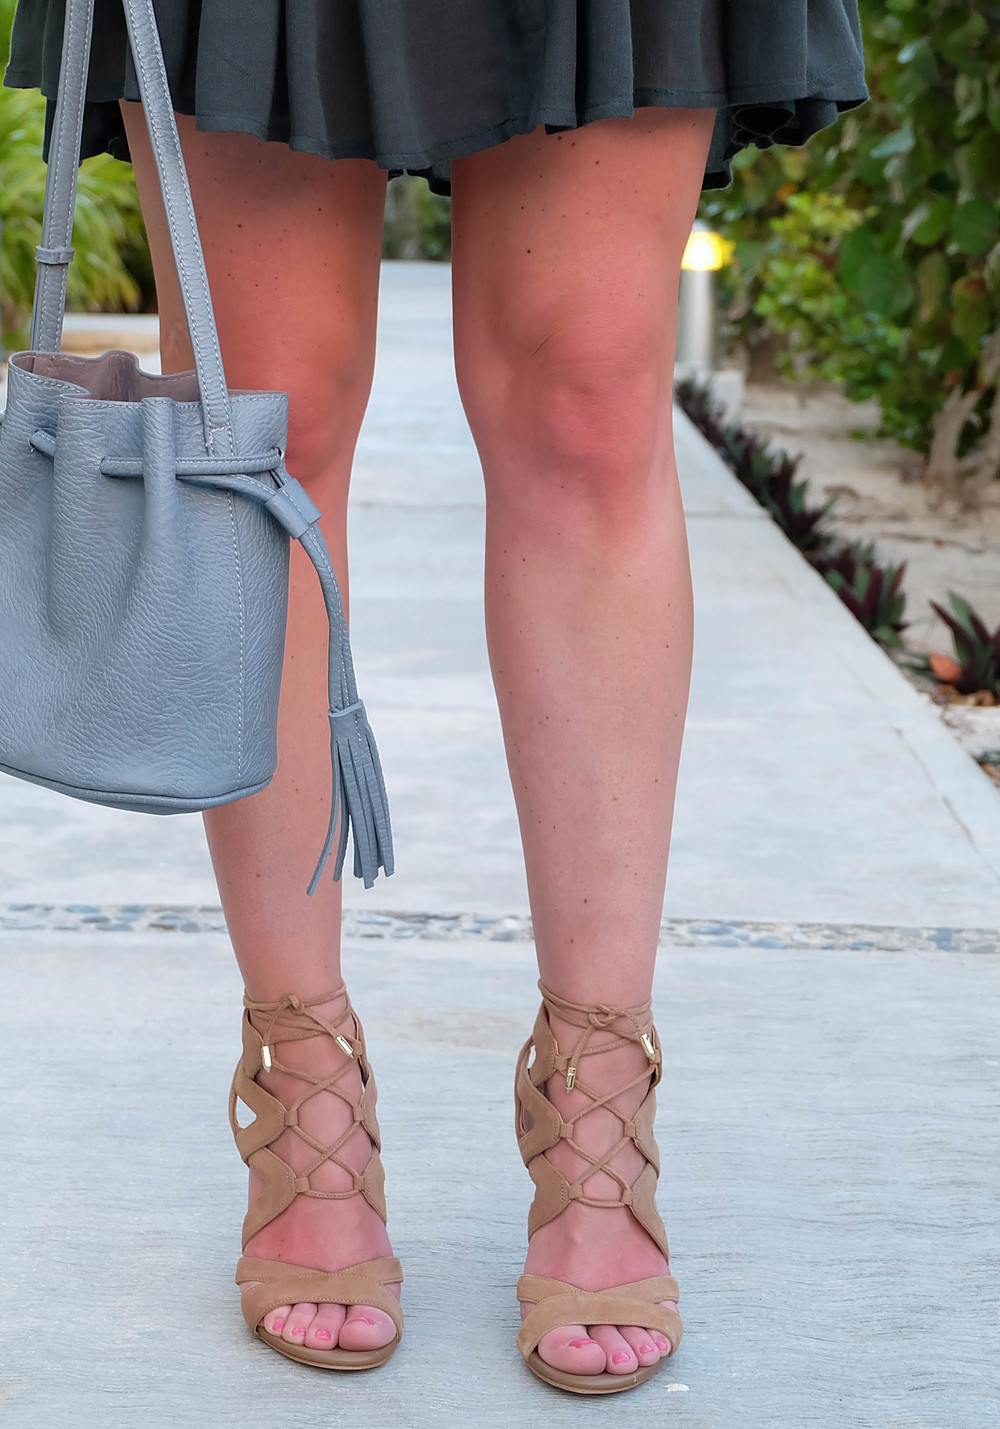 What To Wear On Vacation, Free People With Love From India Dress, Sam Edelman Yardley Lace-Up Sandals, Chambray Bucket Bag, Turquoise Necklace, Wet Hair In A Topknot